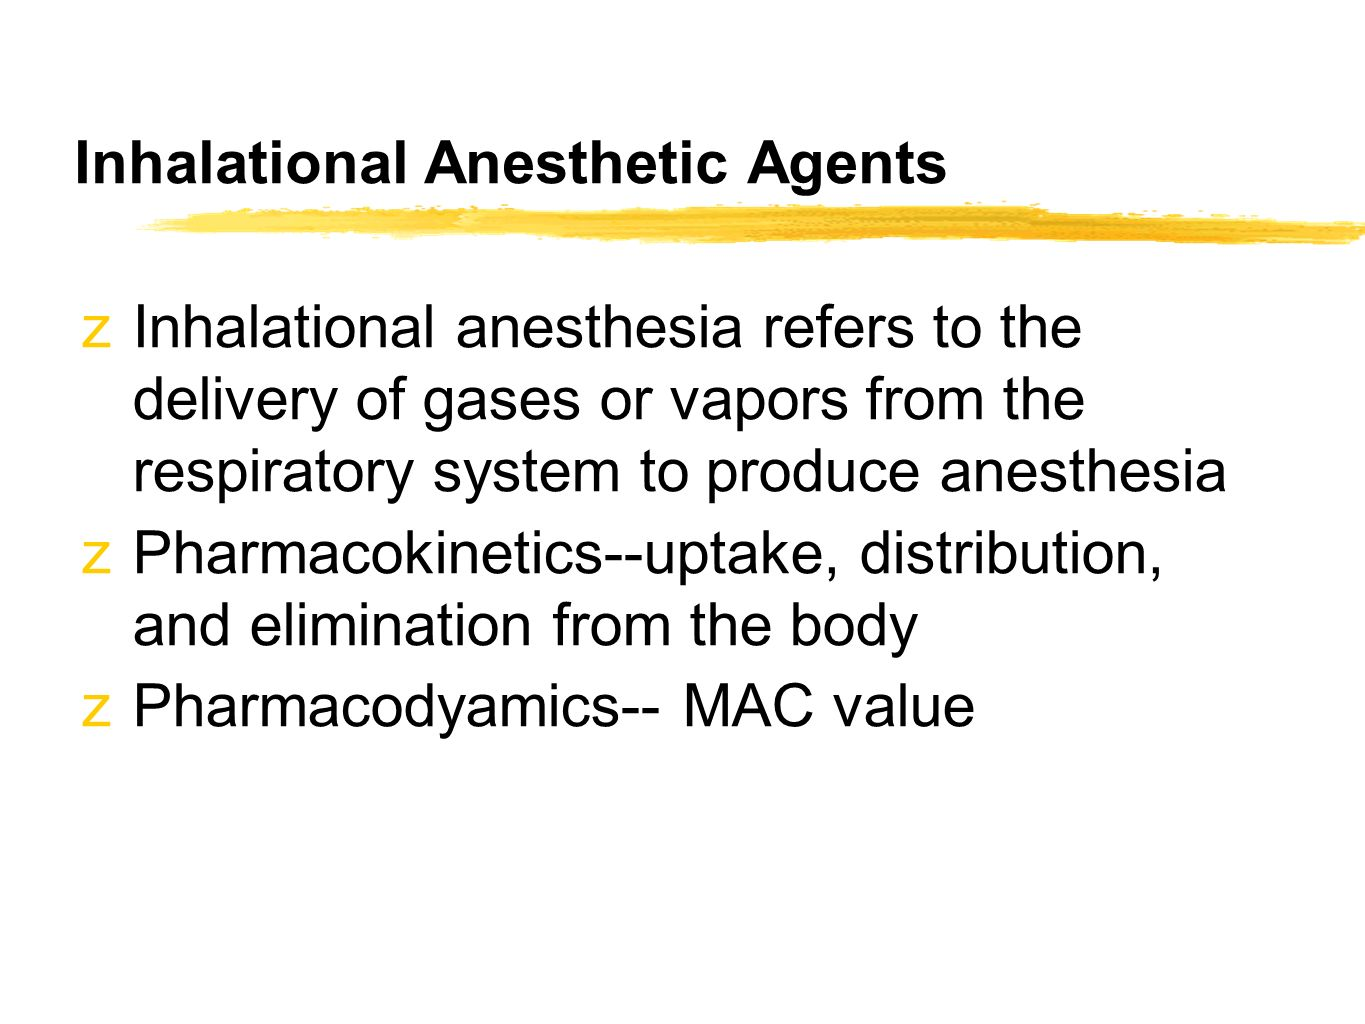 a history and an overview of anesthesia and anesthetic practices Perianesthesia nursing is a nursing specialty practice area concerned with providing nursing care to patients undergoing or recovering from anesthesiaperianesthesia nursing encompasses several subspecialty practice areas and represents a diverse number of practice environments and skill sets.